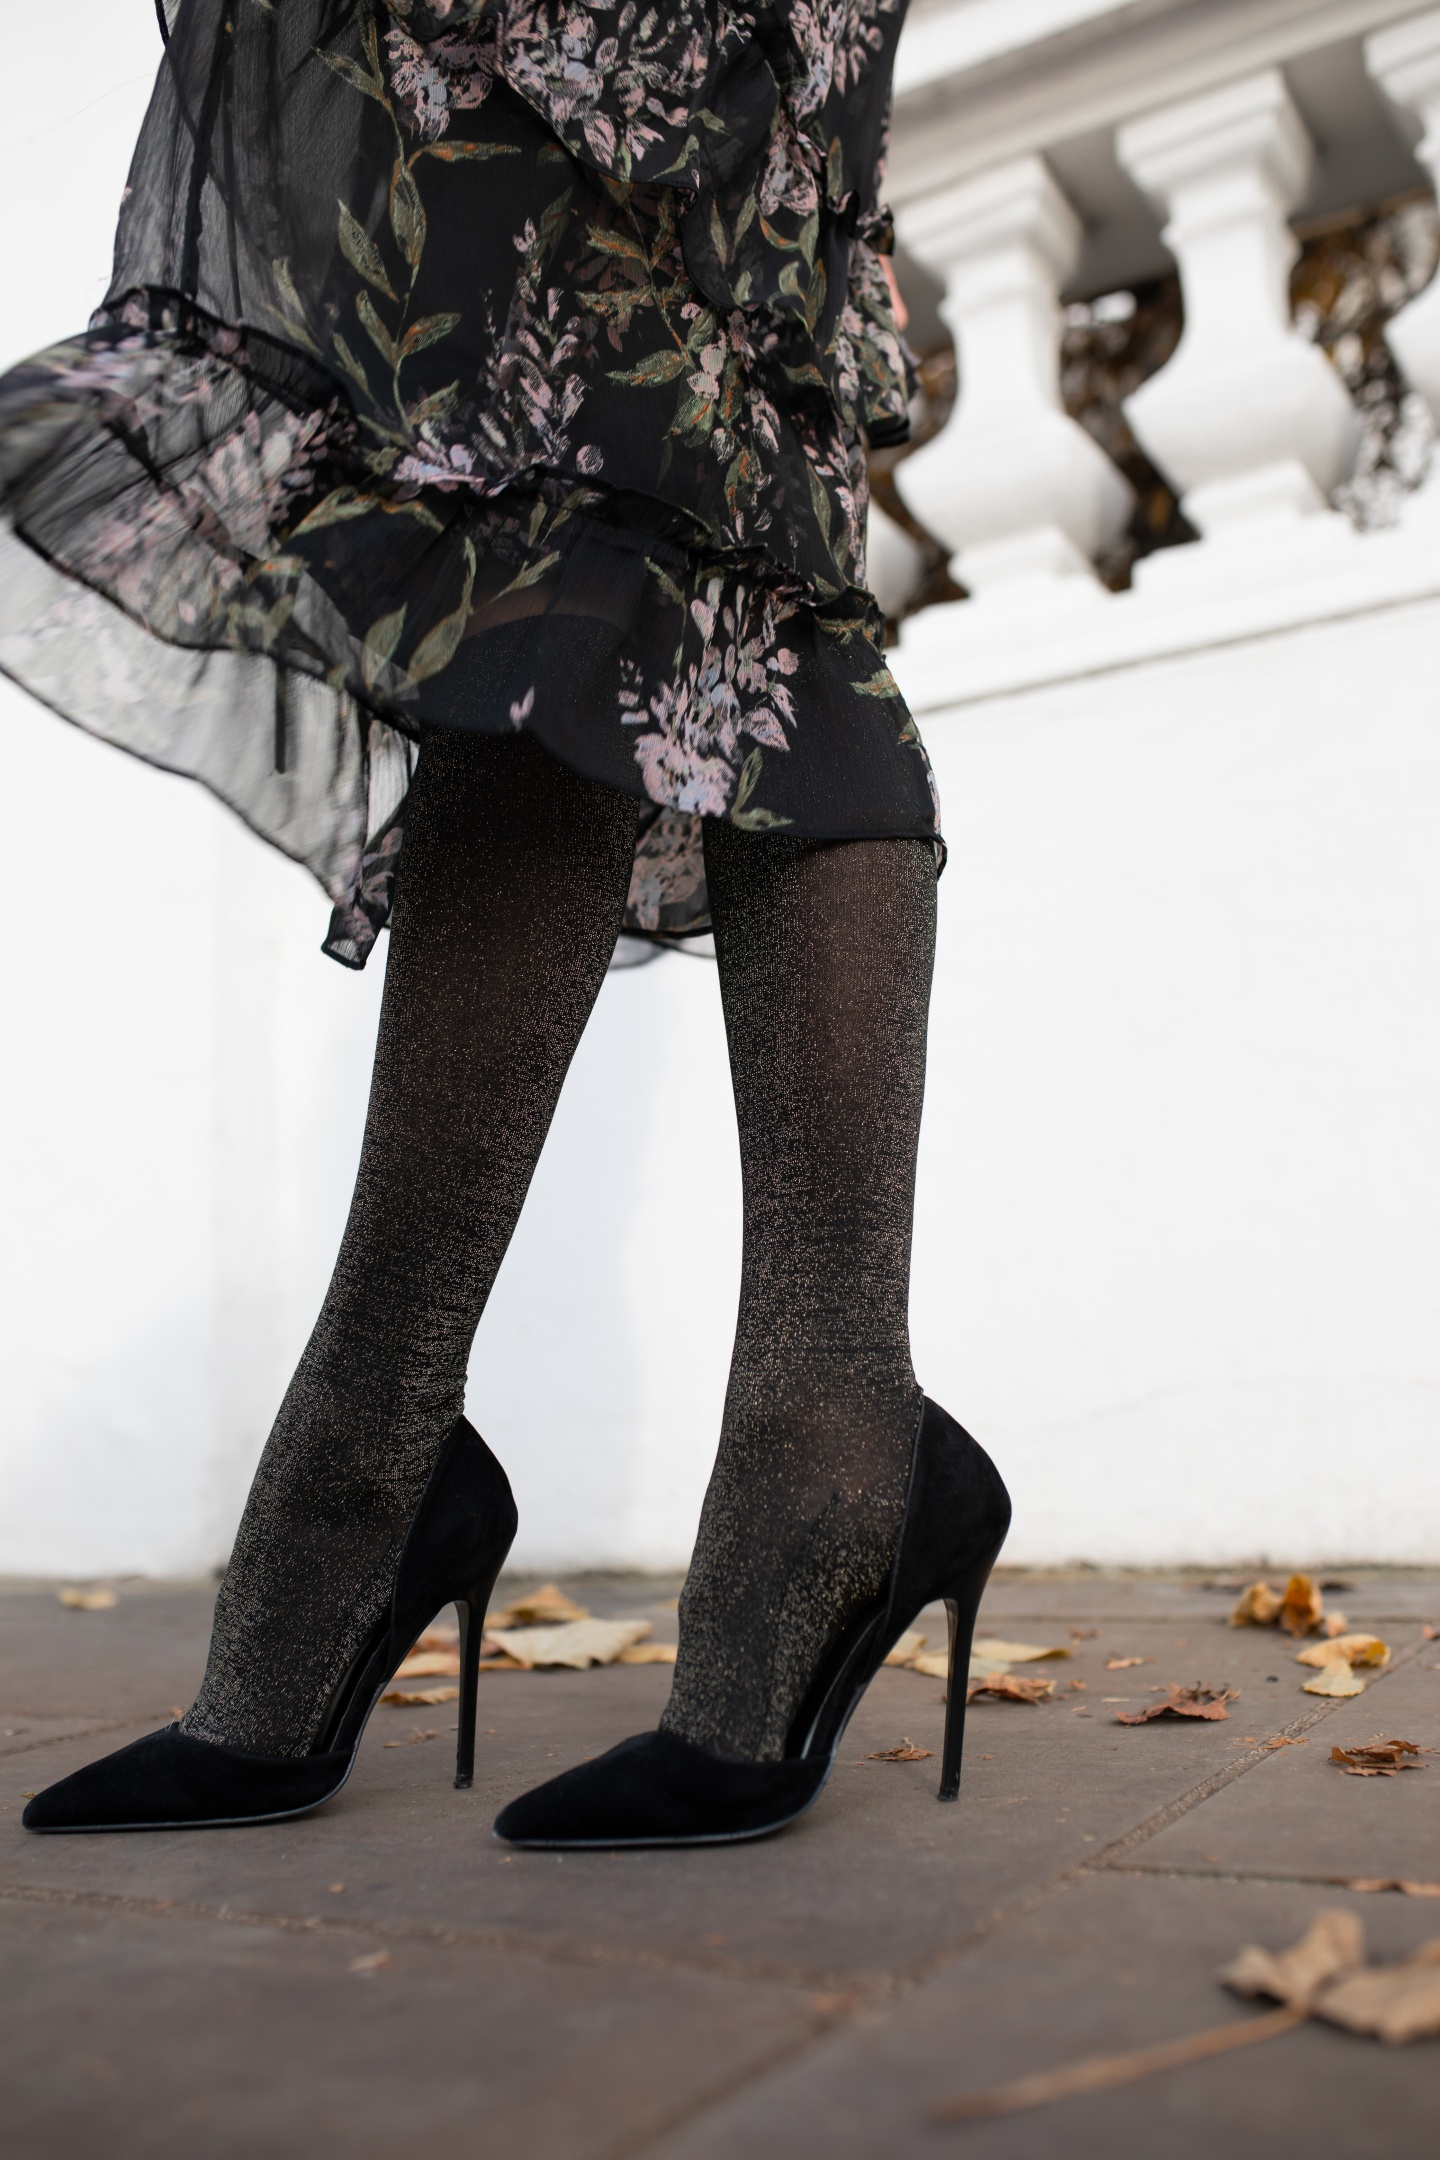 tights, hosiery, stockings, thermals, how to dress warm, how to style tights, falke